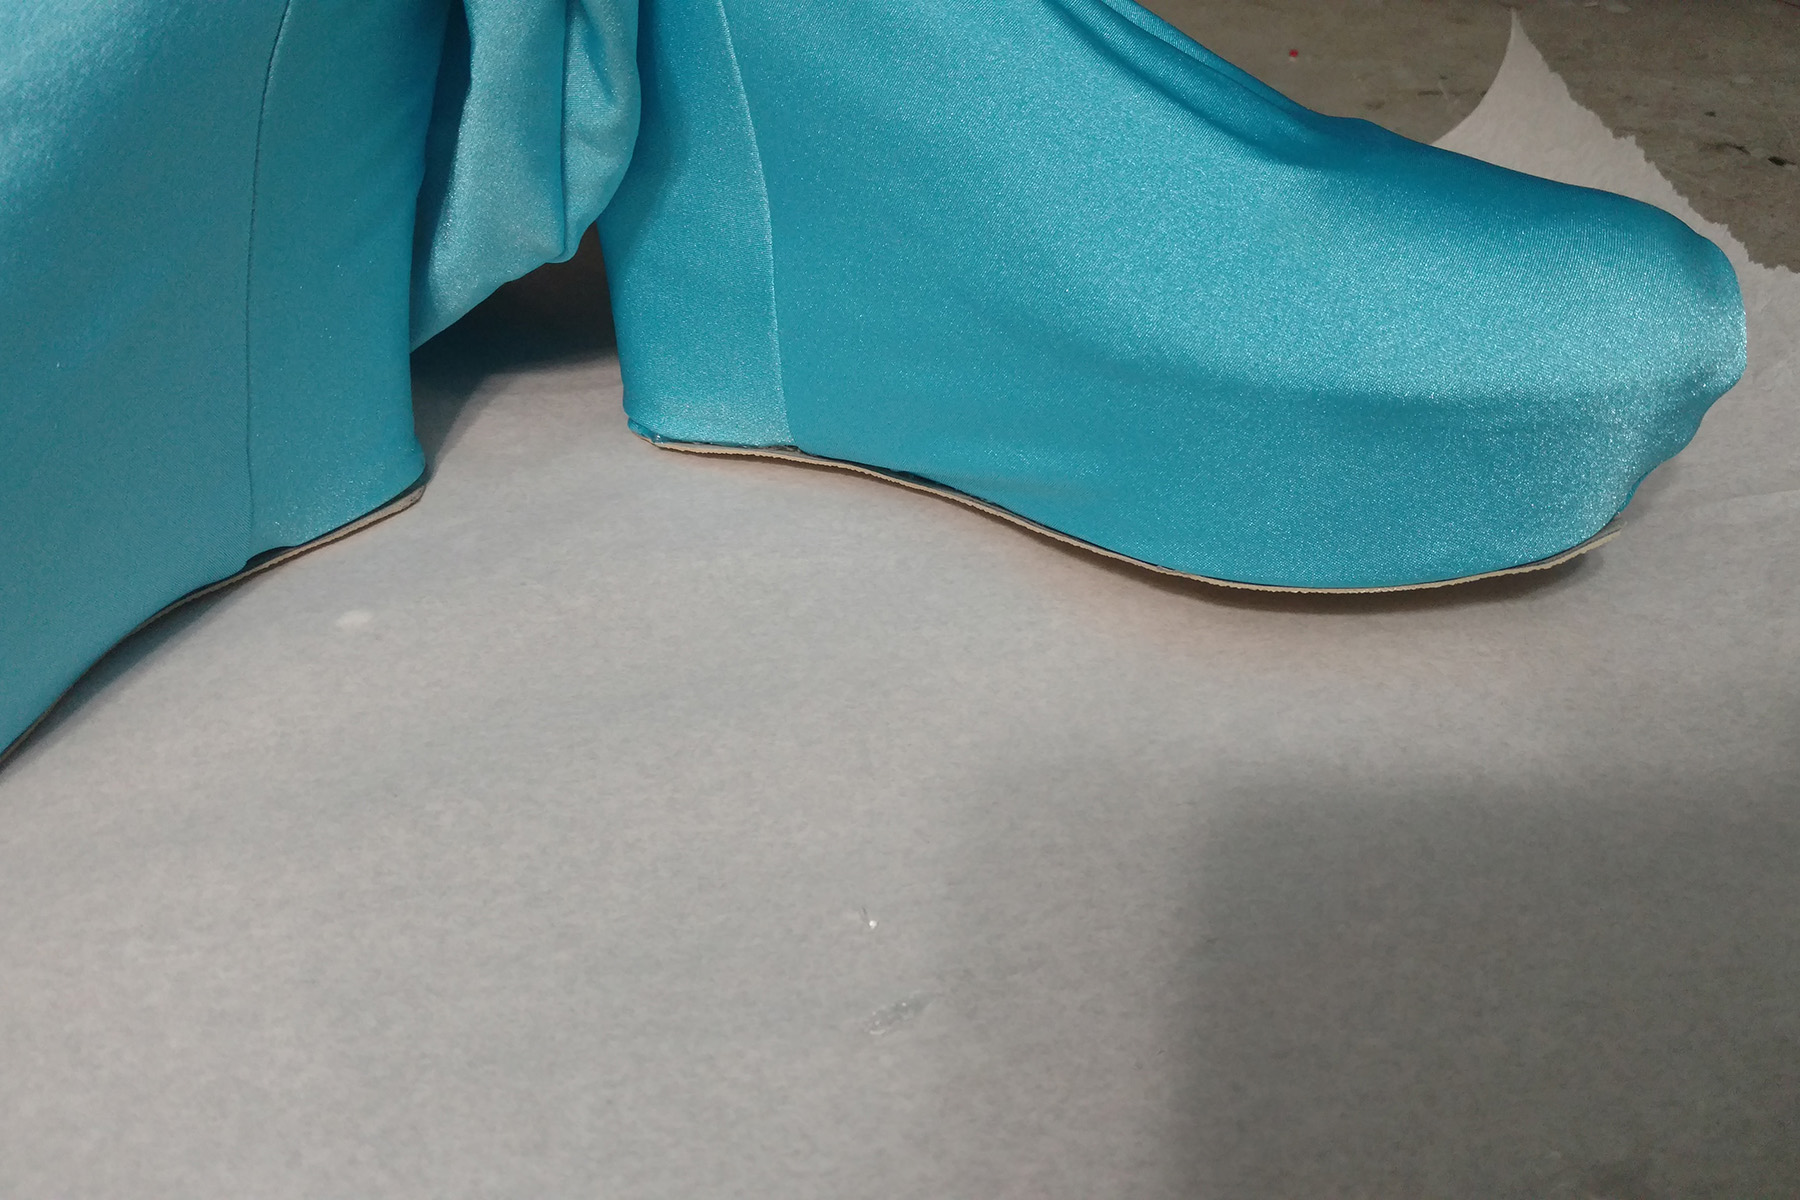 Two fabric covered shoes are shown, right side up, on the work surface. They are covered in a bright blue fabric.